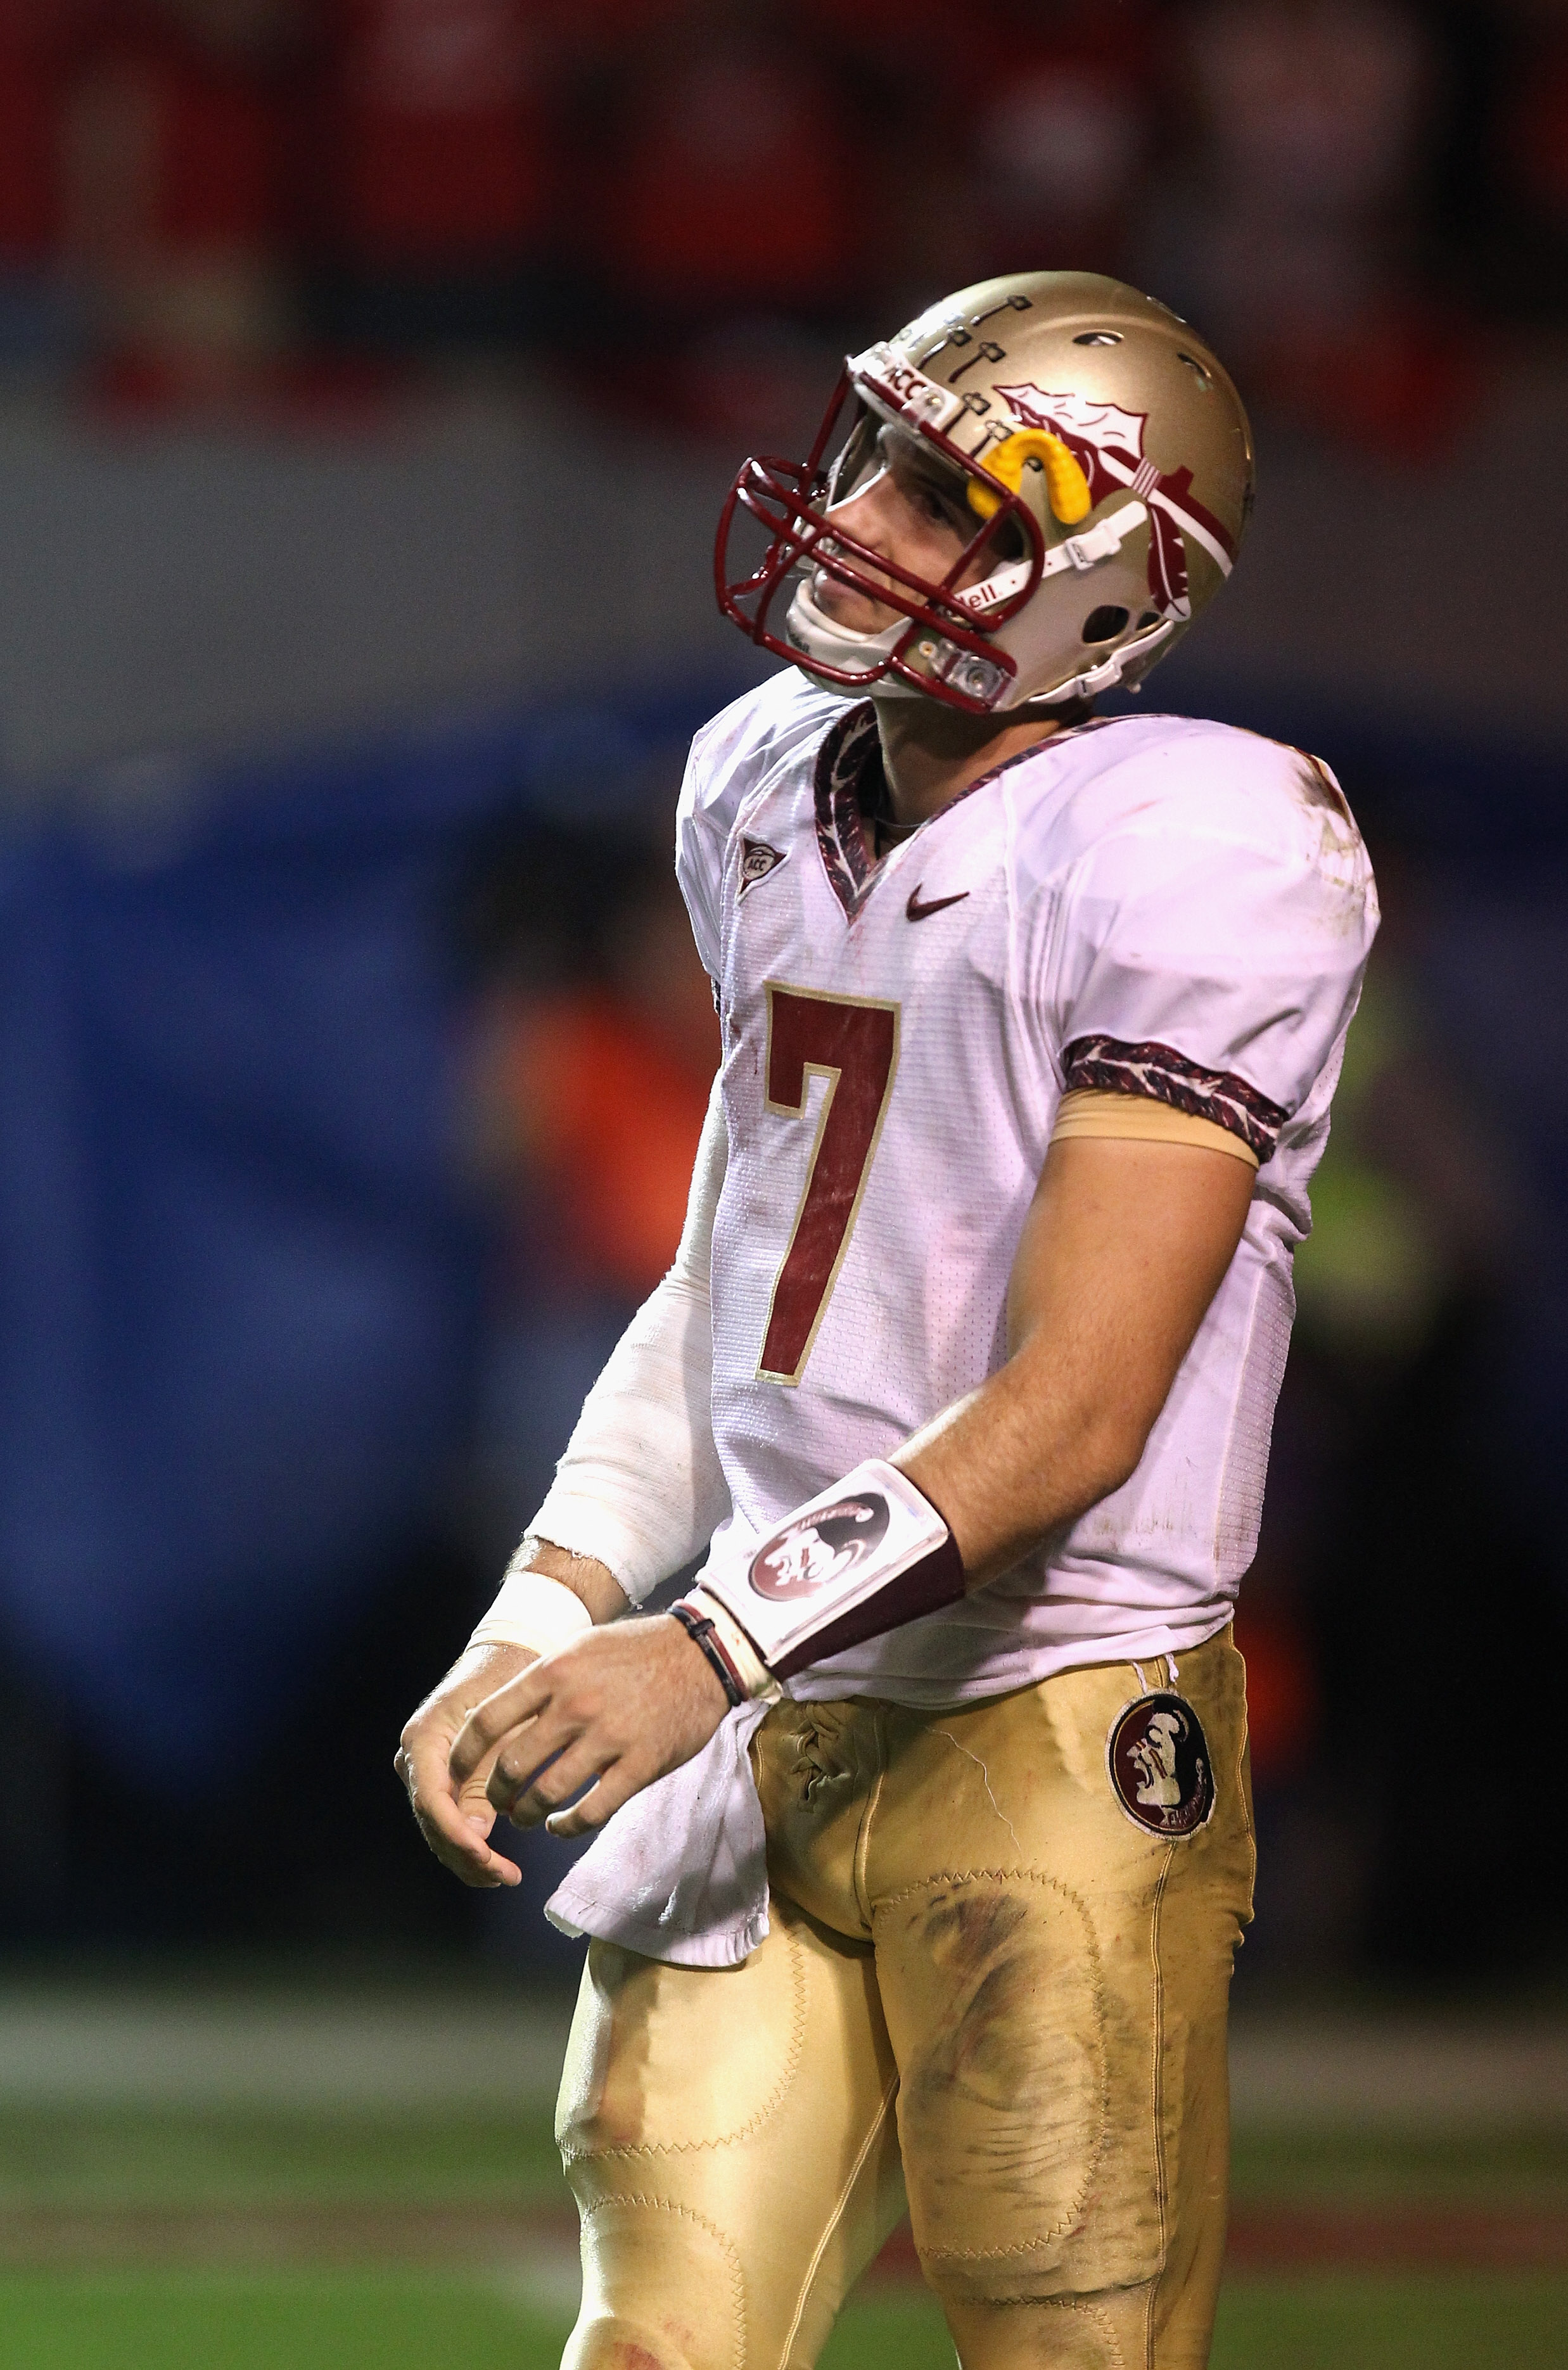 RALEIGH, NC - OCTOBER 28:  Christian Ponder #7 of the Florida State Seminoles reacts to a play against the North Carolina State Wolfpack during their game at Carter-Finley Stadium on October 28, 2010 in Raleigh, North Carolina.  (Photo by Streeter Lecka/G